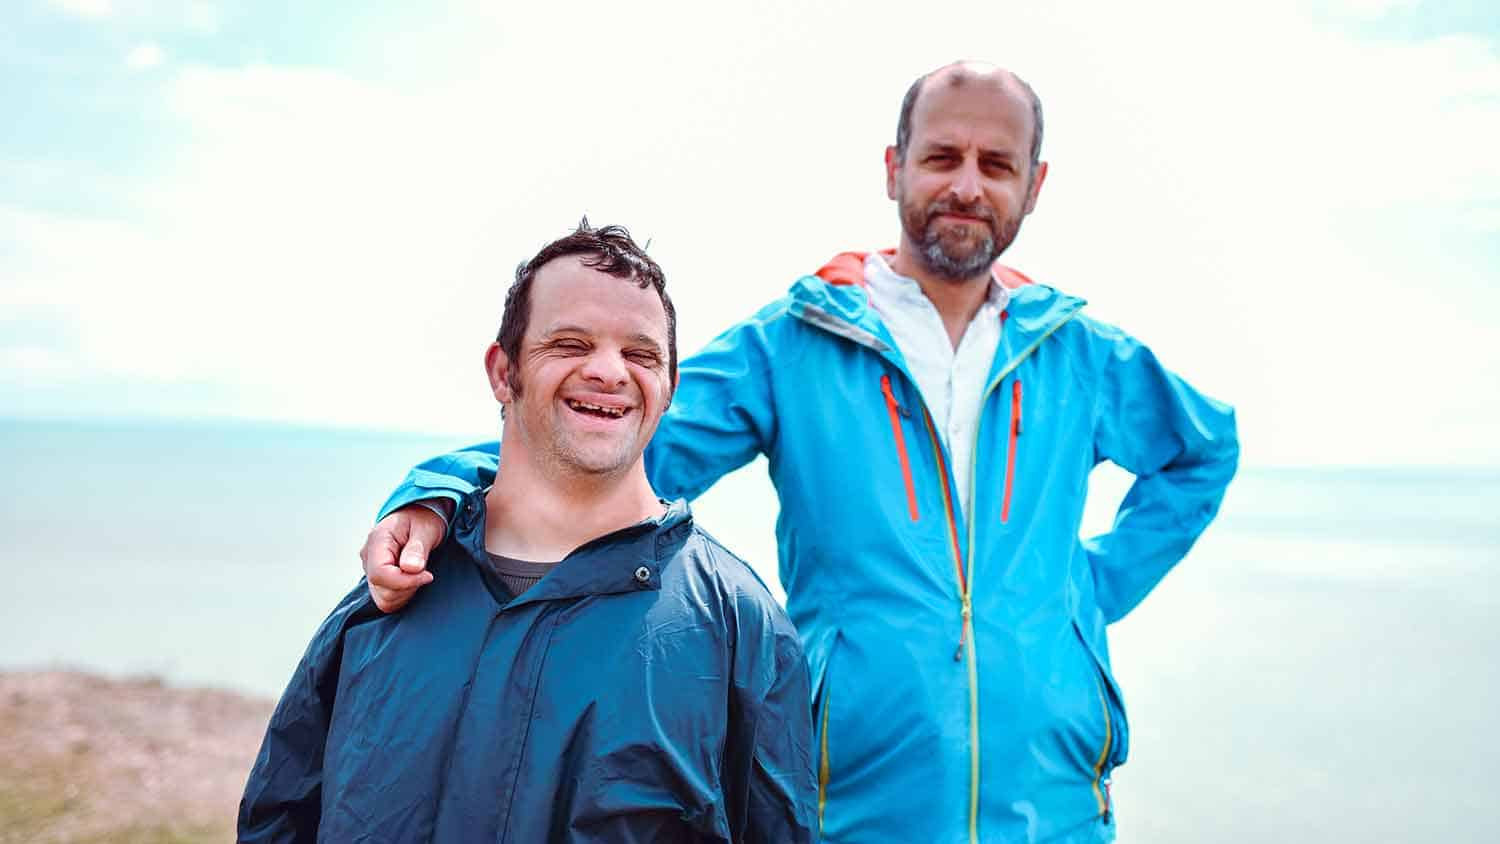 Two men looking at the camera in blue outdoor wear clothes. The man nearer the camera has down syndrome, the man behind has his hand on the other's shoulder